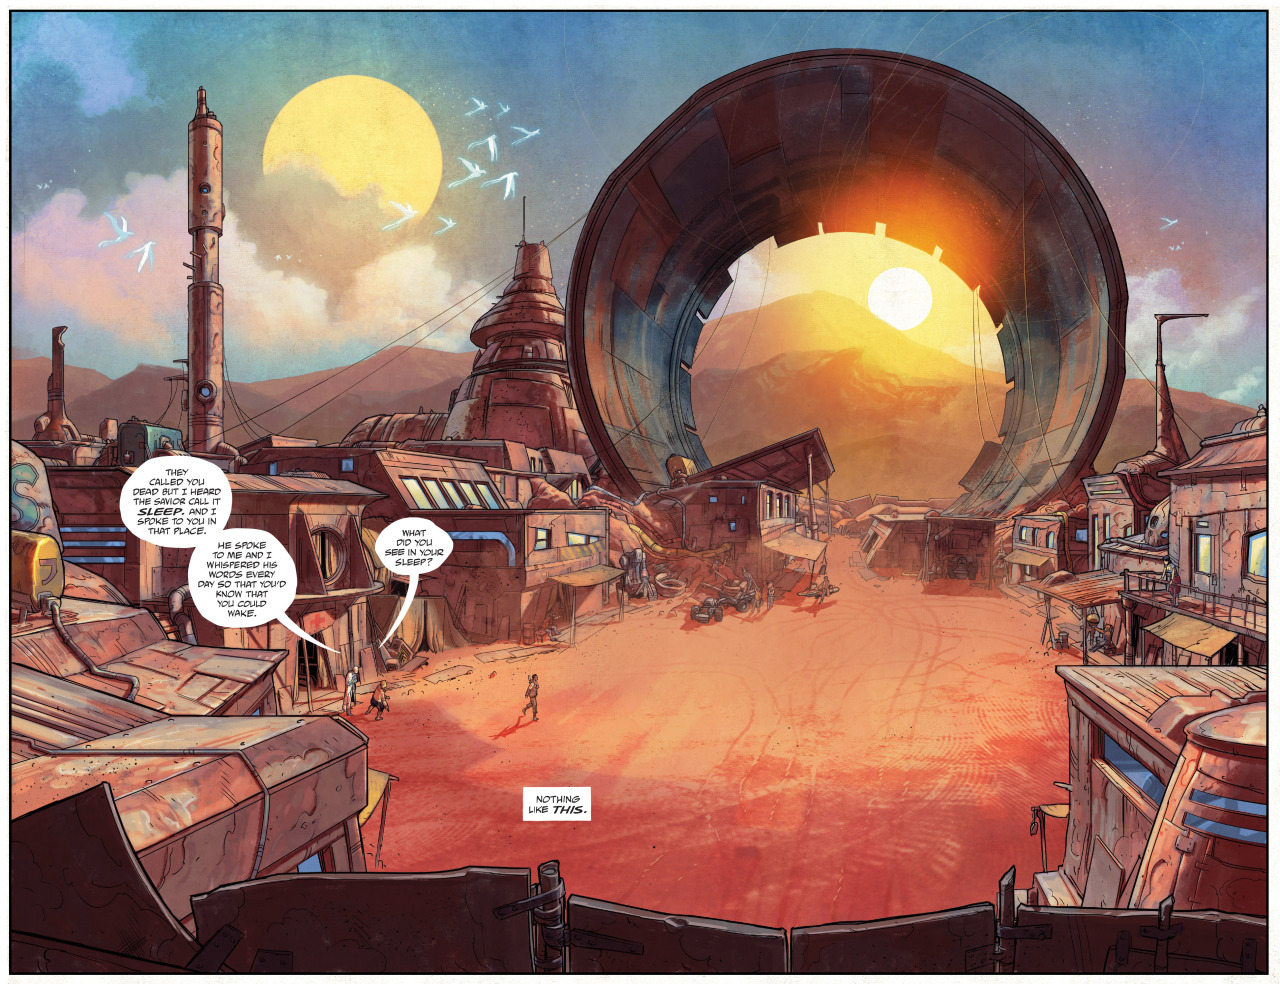 Clean Lines and Dirty Sci-Fi: A Look at the Art of Drifter with Nic Klein